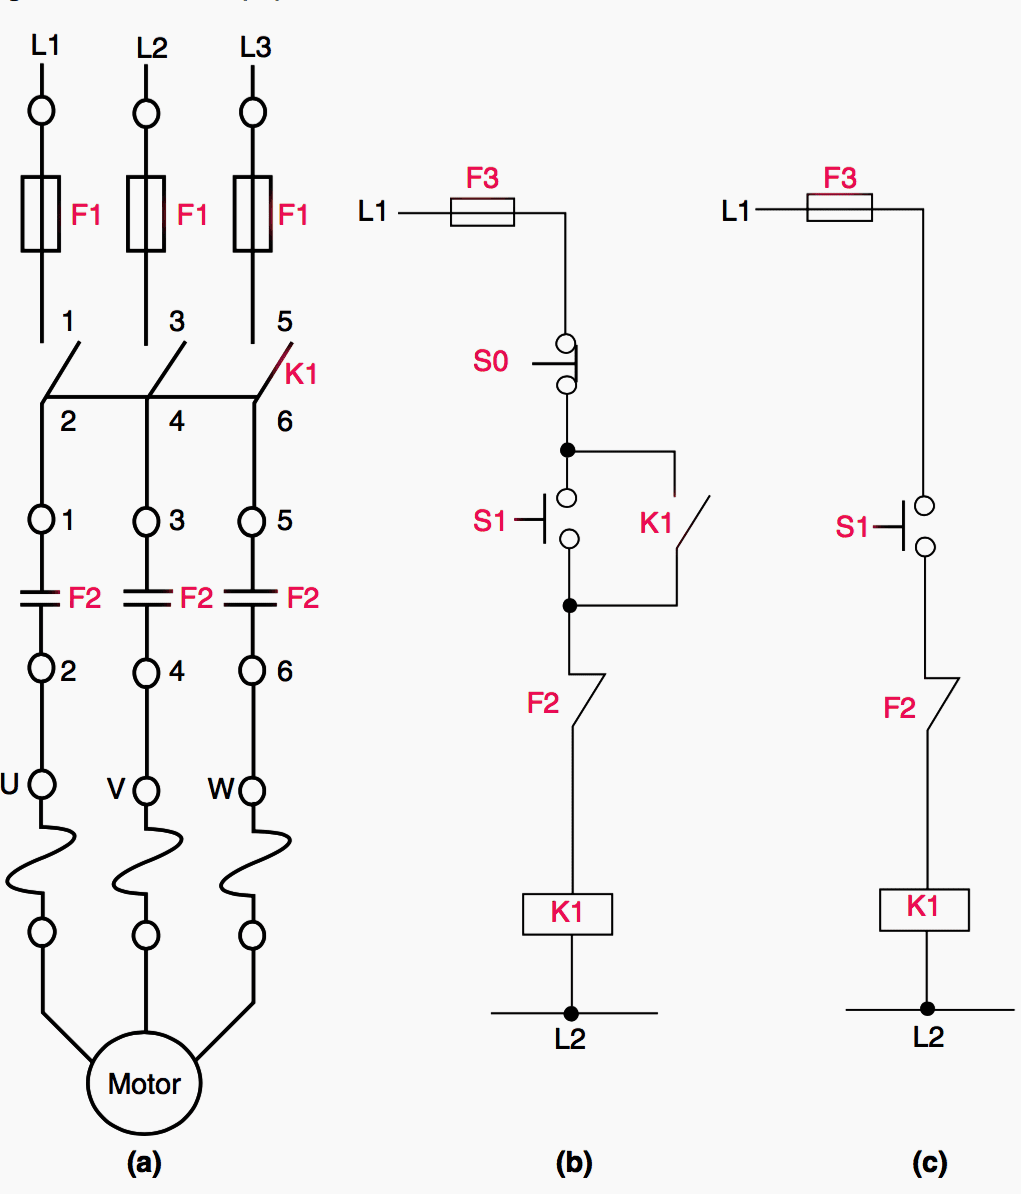 small resolution of outstanding hofner control panel wiring diagrams dimensions of hofner violin bass hofner beatle bass wiring diagram